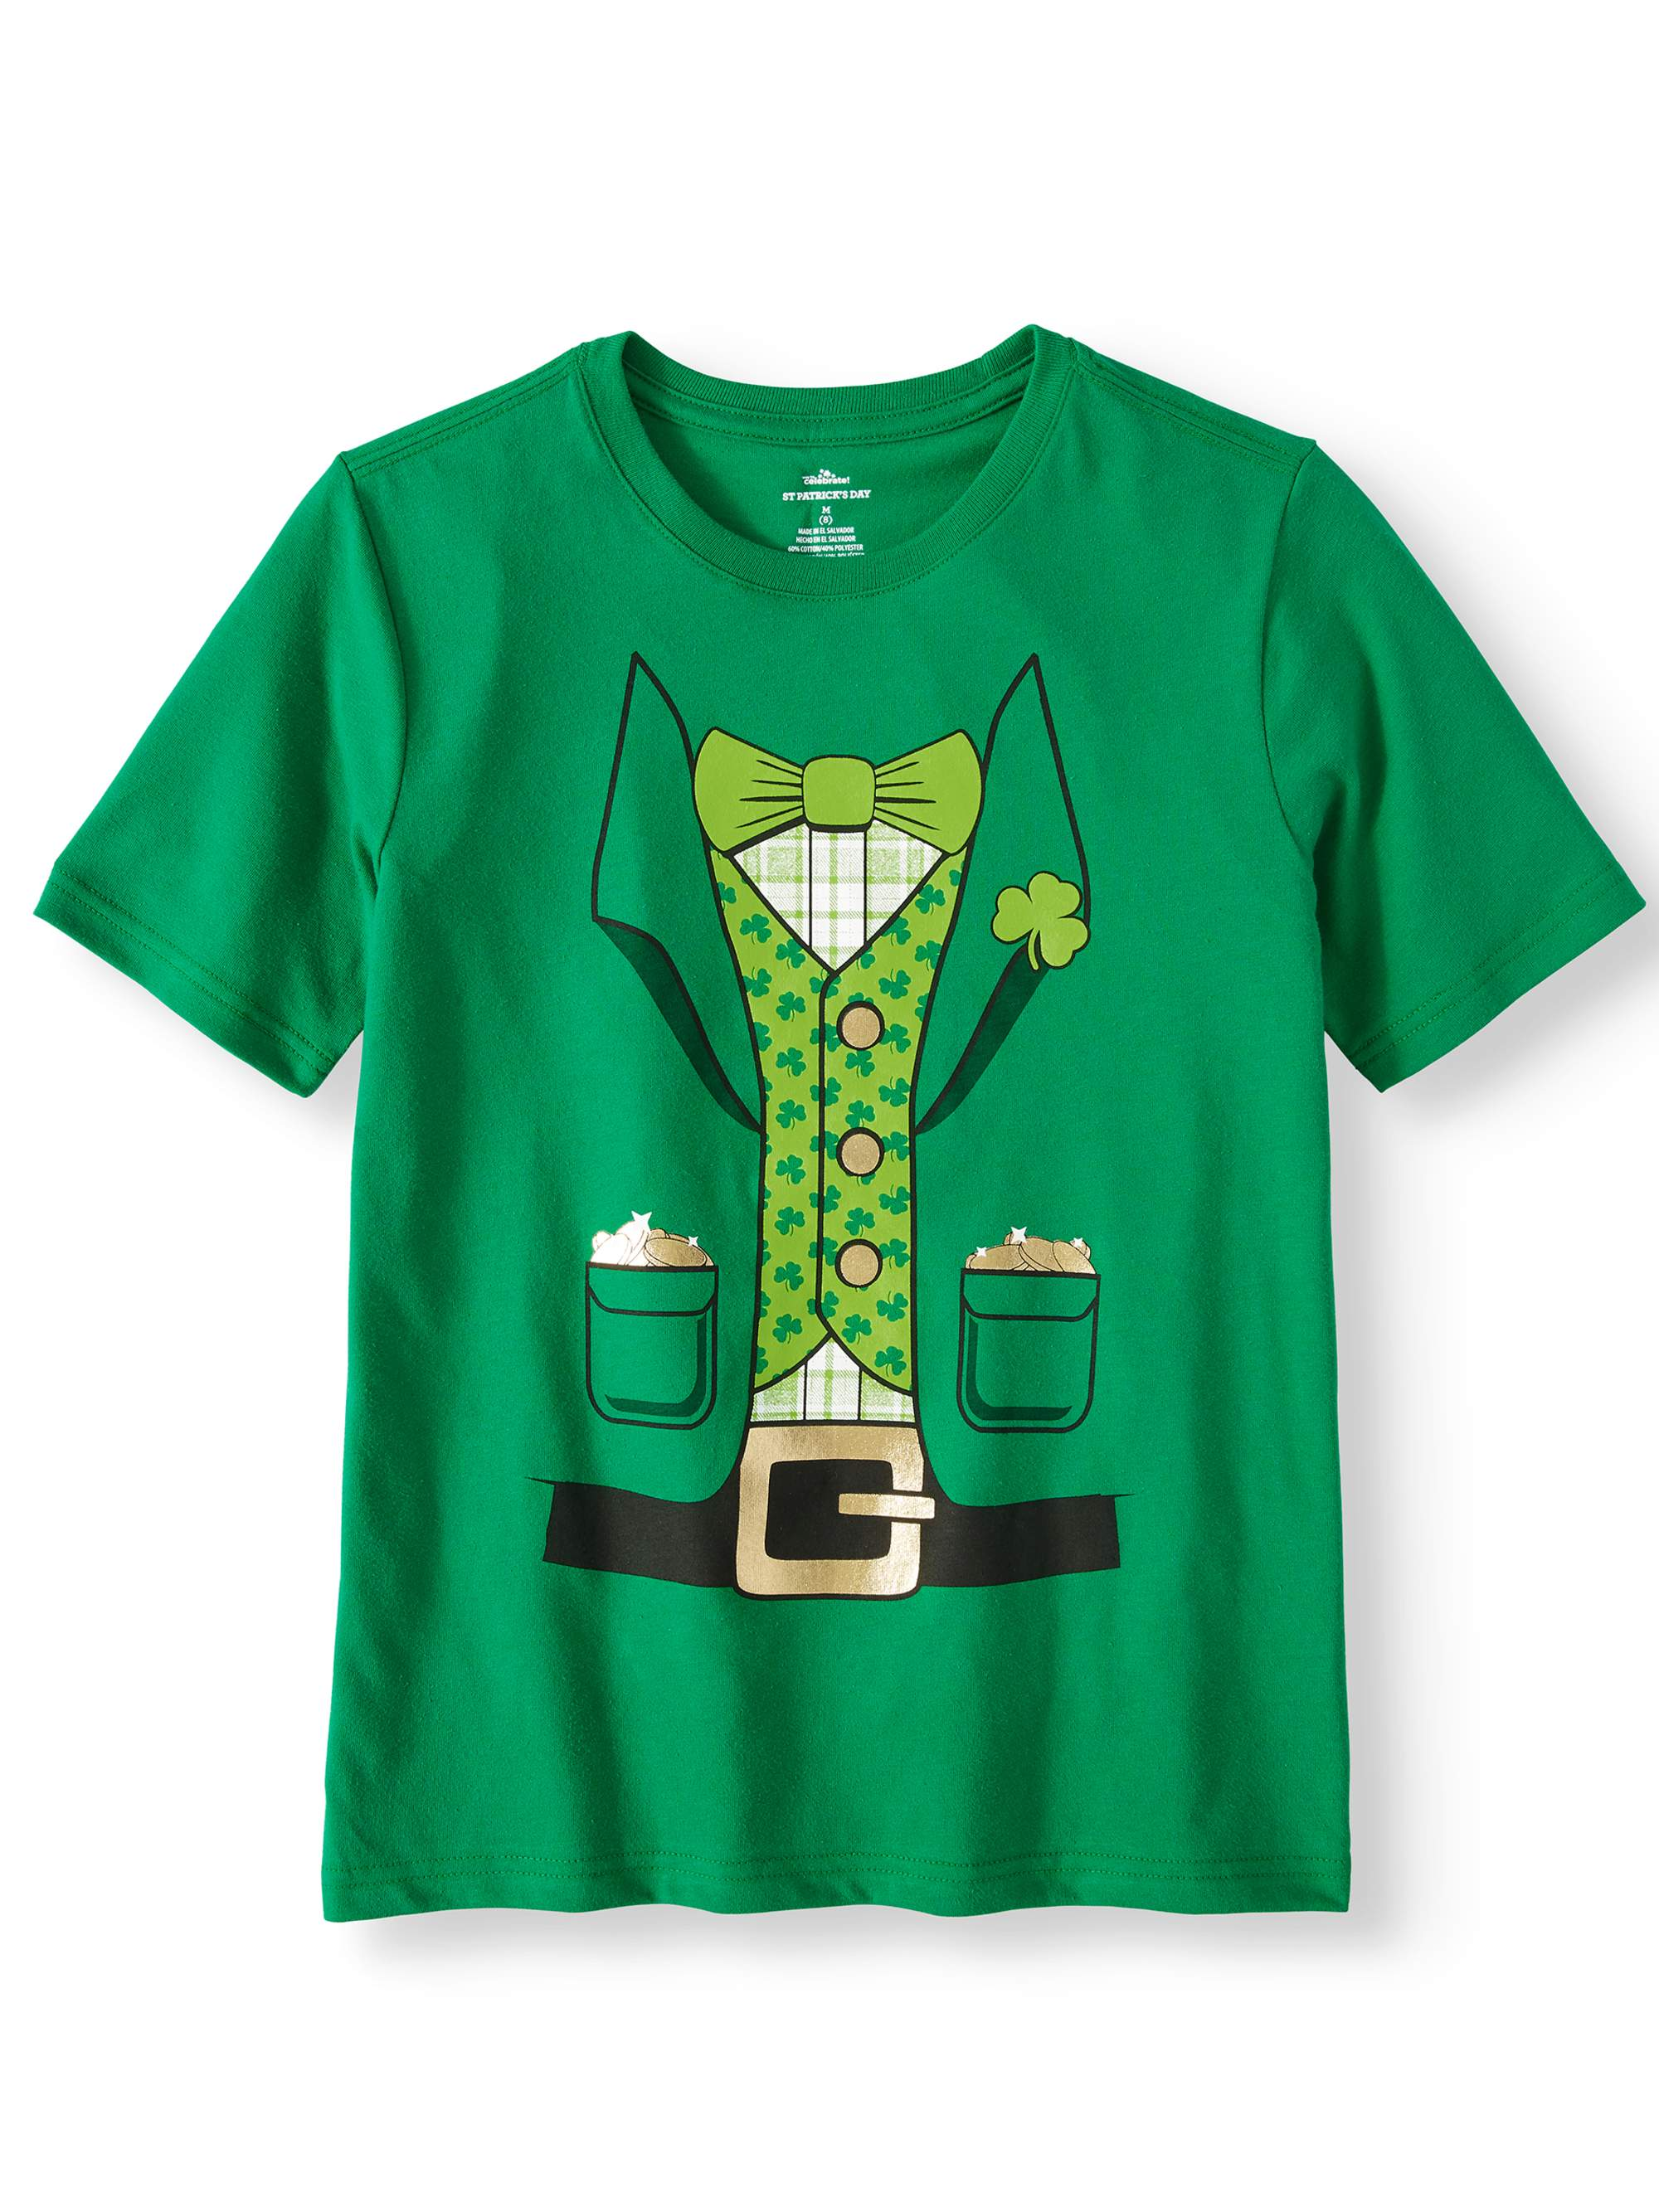 Boys st. patrick's day graphic seasonal short sleeve tee (little boy and big boy)